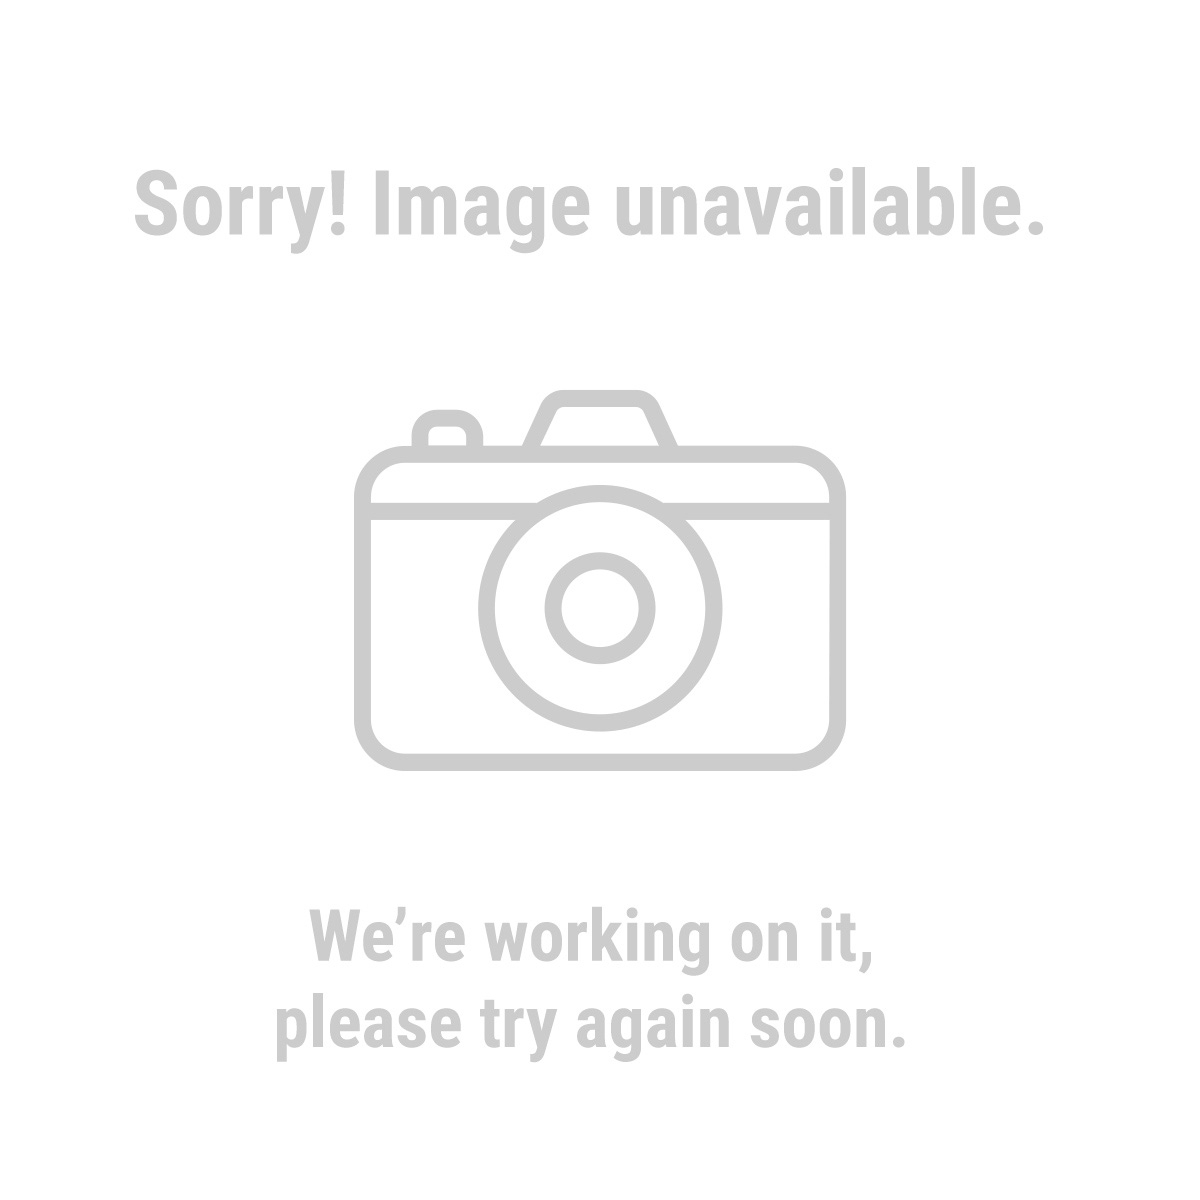 Pacific Hydrostar 67546 6.5 HP, 2500 PSI High Pressure Washer - Certified for All States Except California